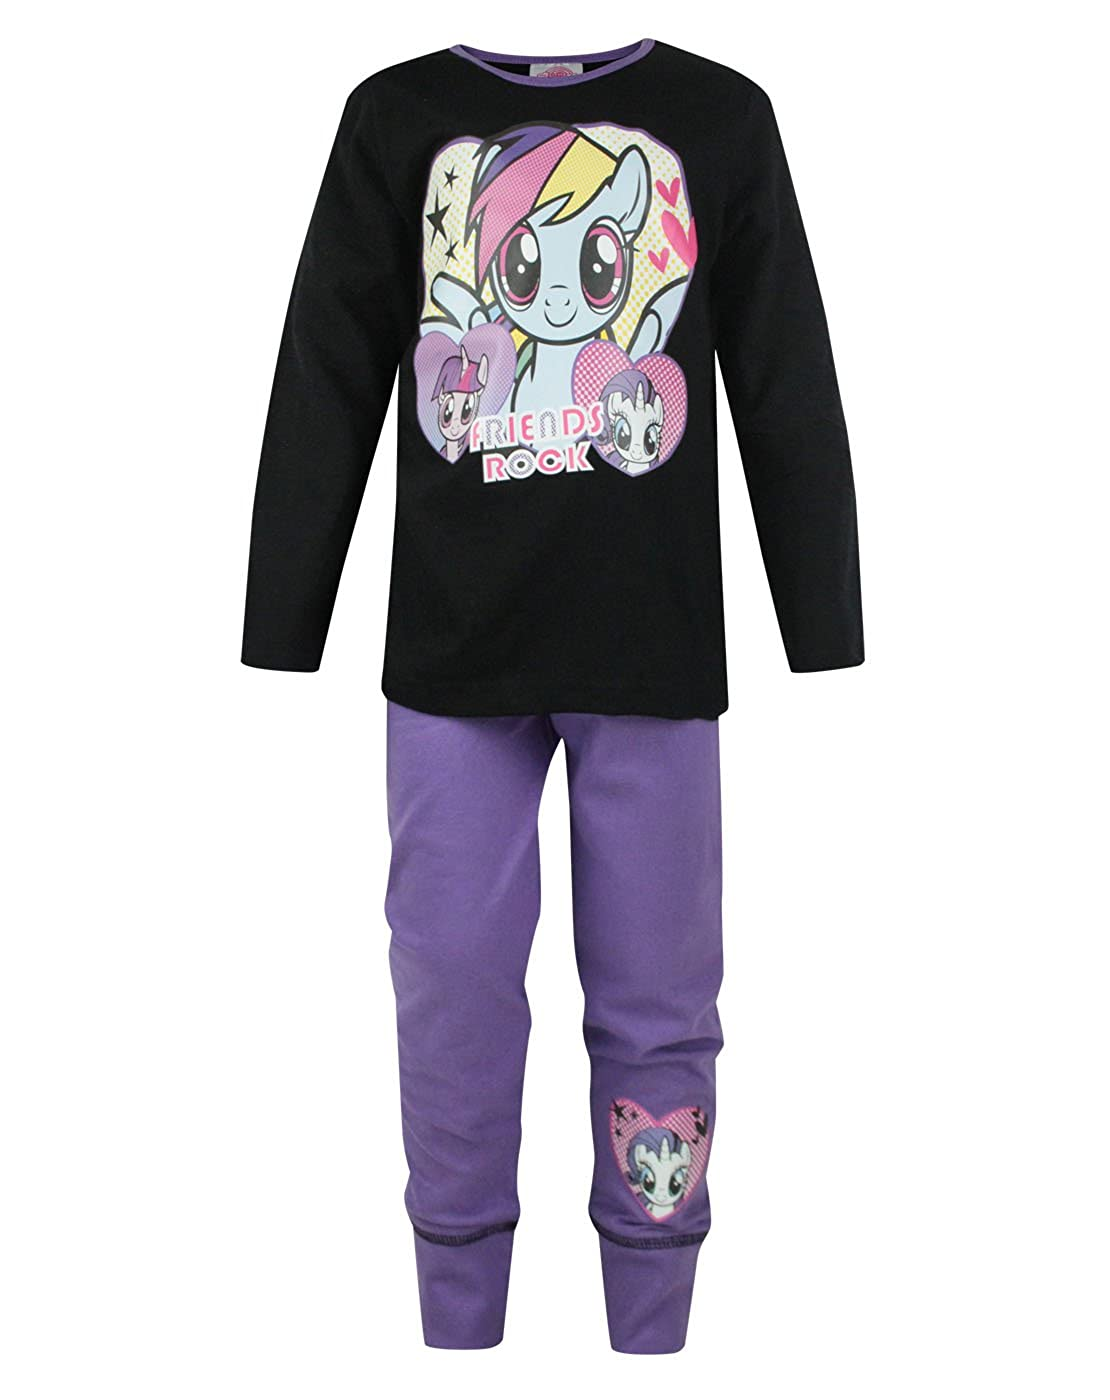 Official My Little Pony Friends Rock Girl's Pyjamas